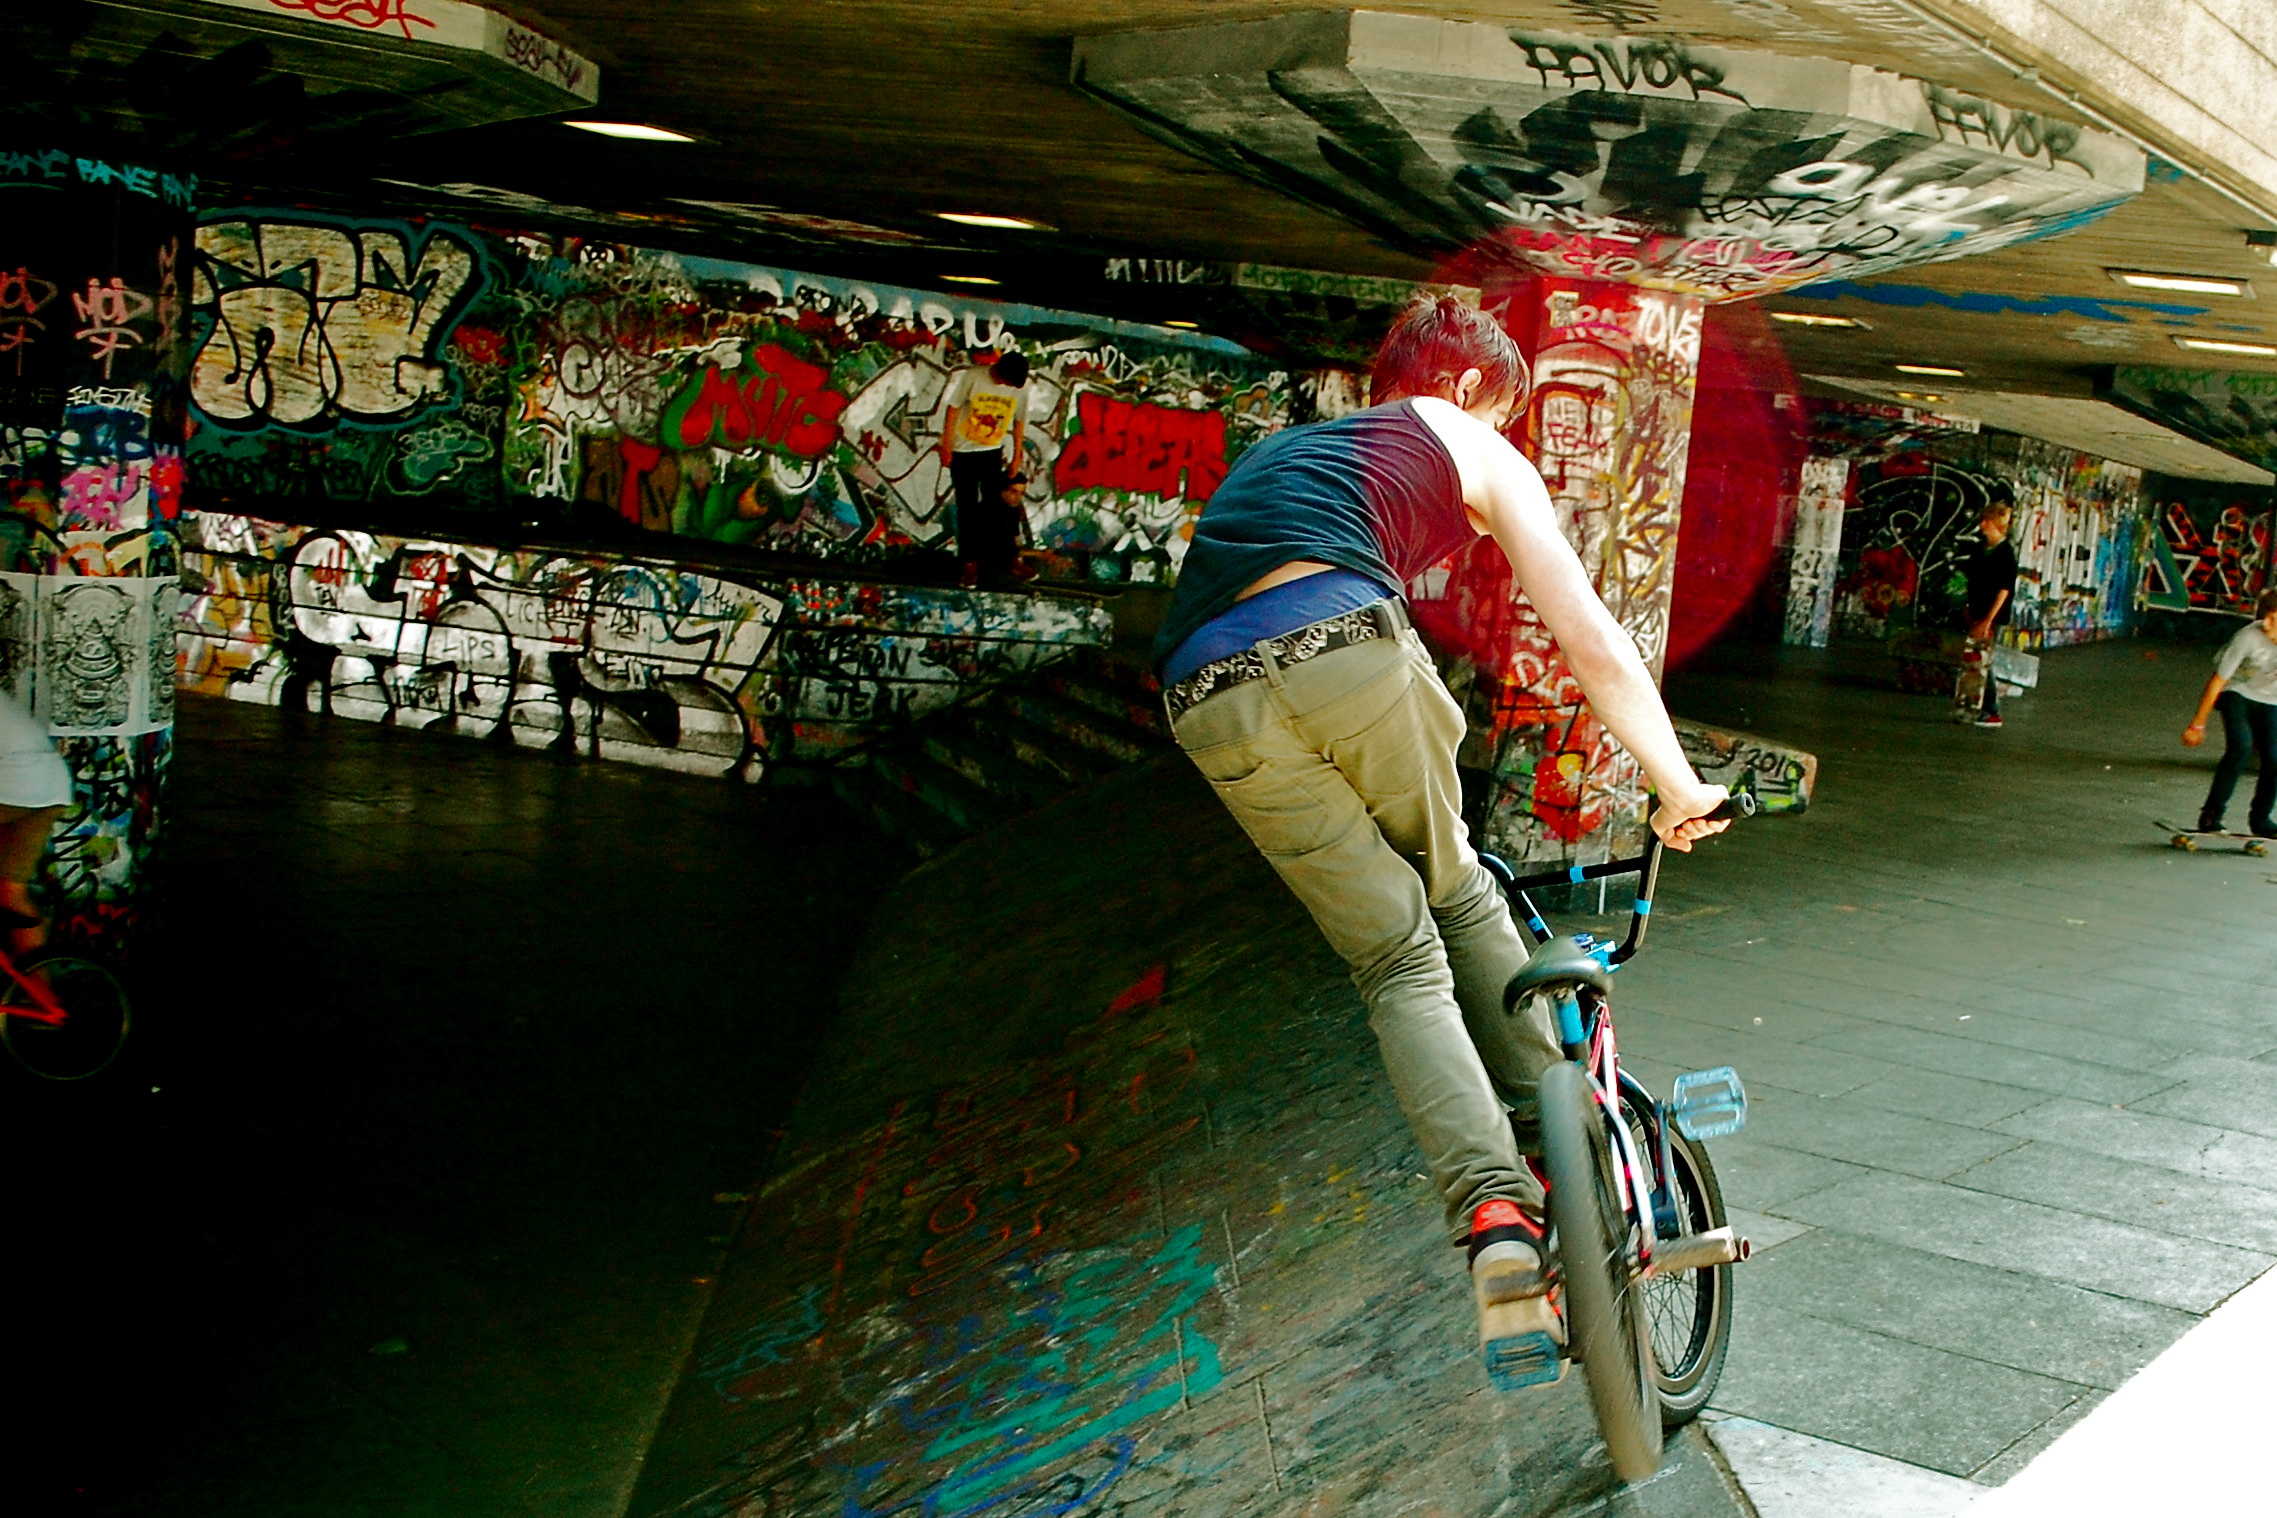 BMXers practice along the Thames Embankment in London.